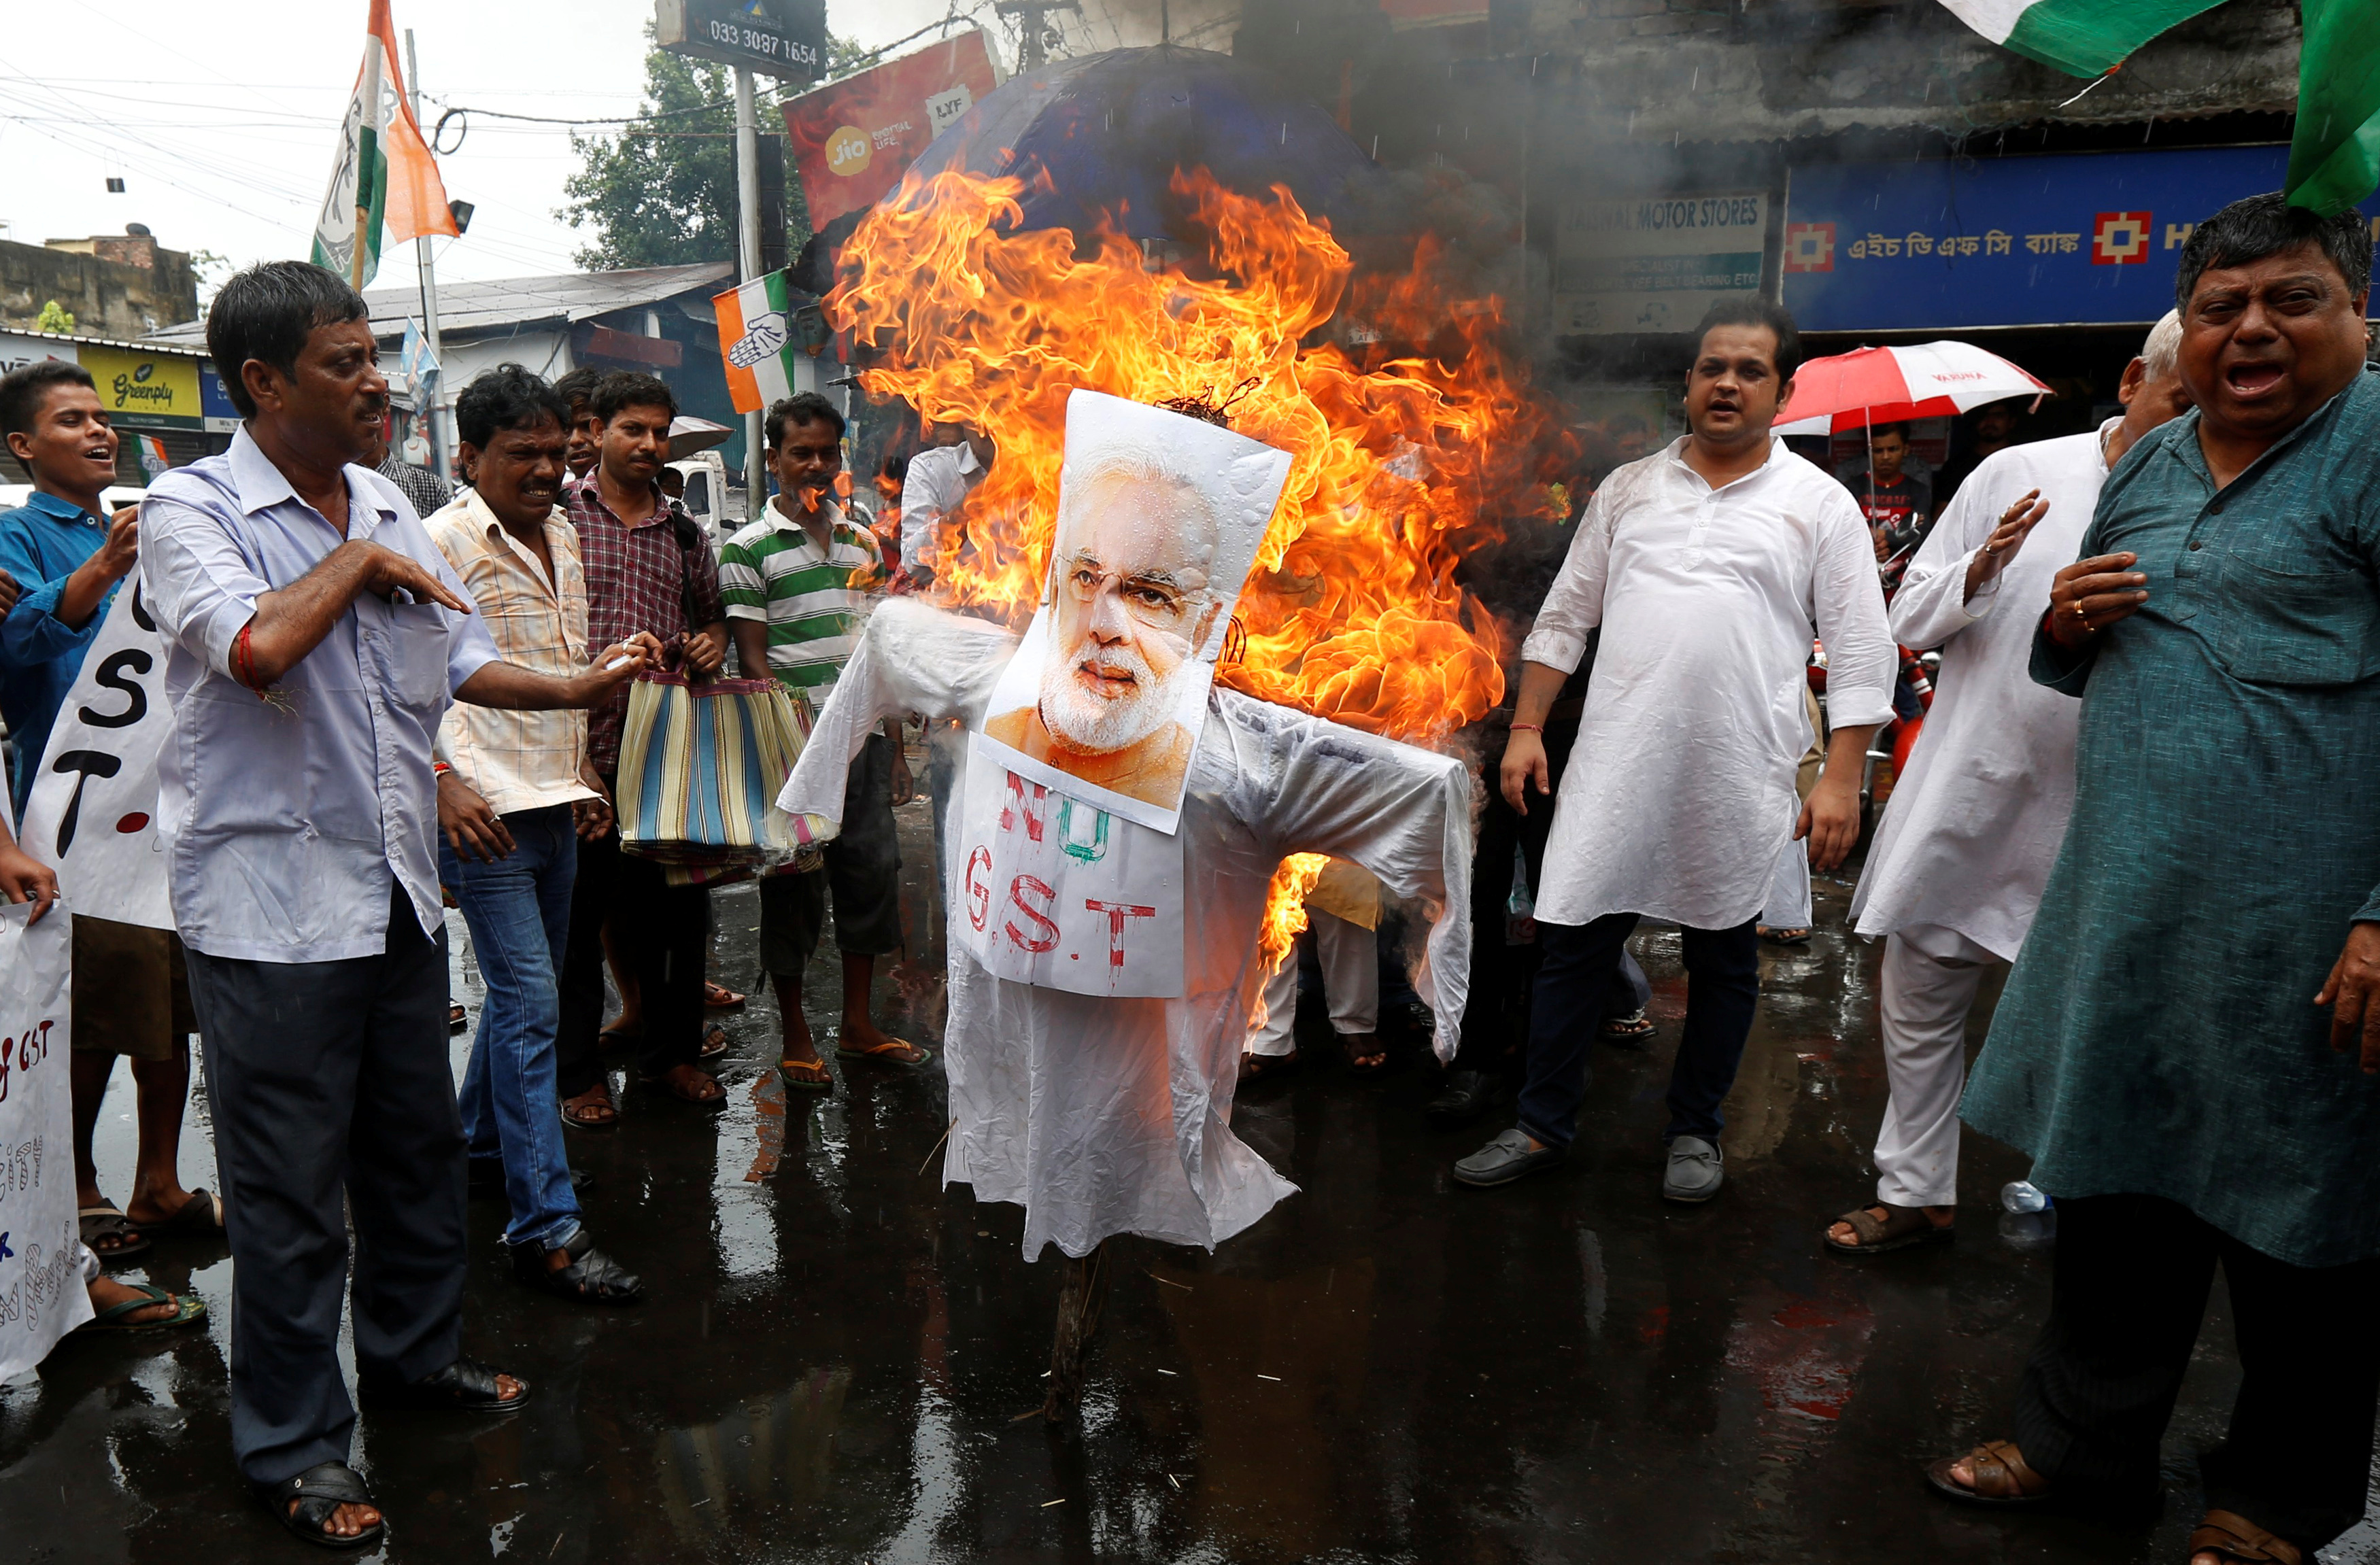 Congress supporters burn an effigy of Prime Minister Narendra Modi during a protest against the implementation of the Goods and Services Tax in Kolkata on July 2, 2017. Credit: Rupak De Chowdhuri/Reuters